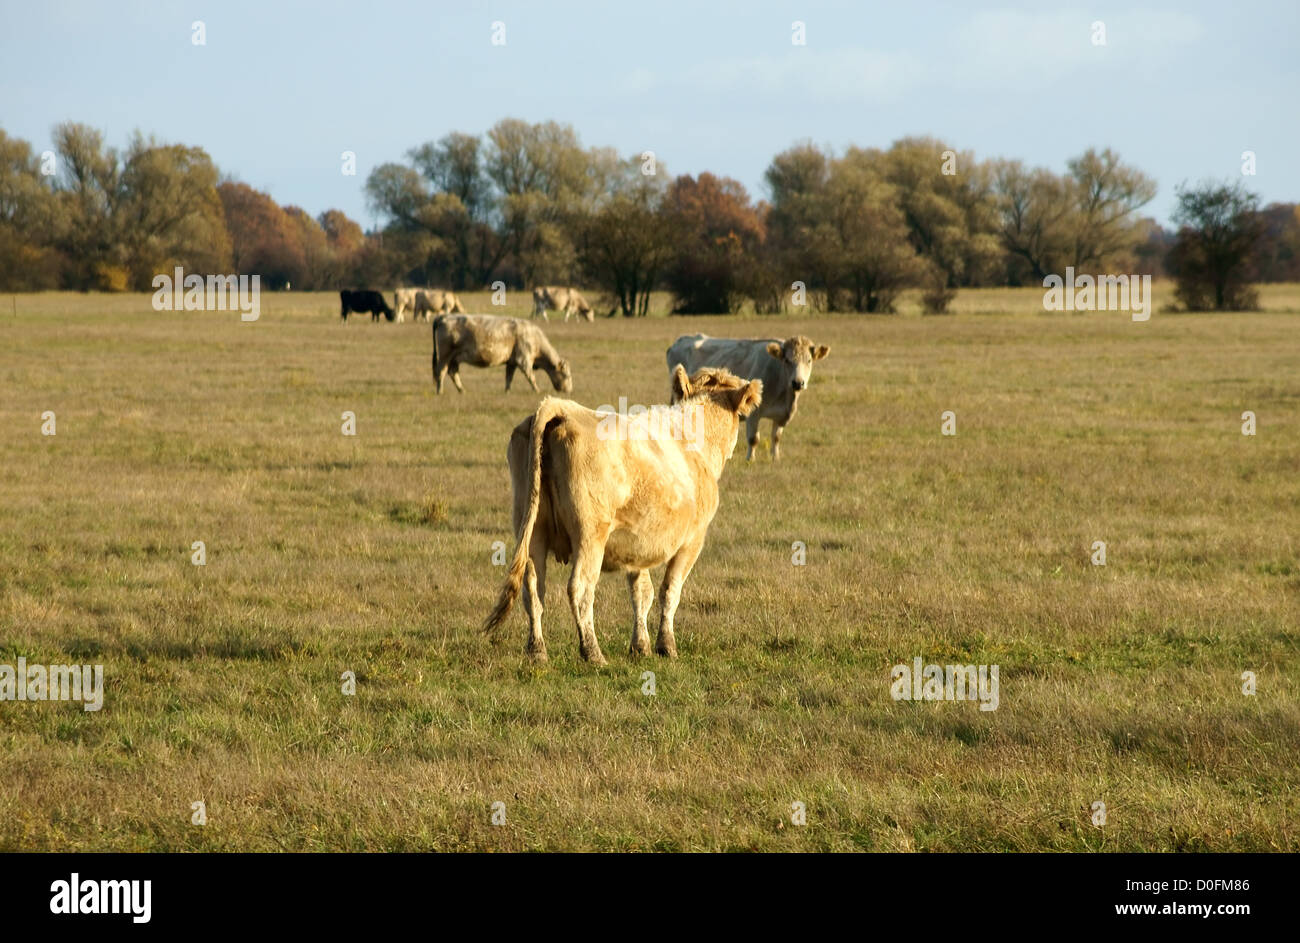 Cows on a pasture - Stock Image